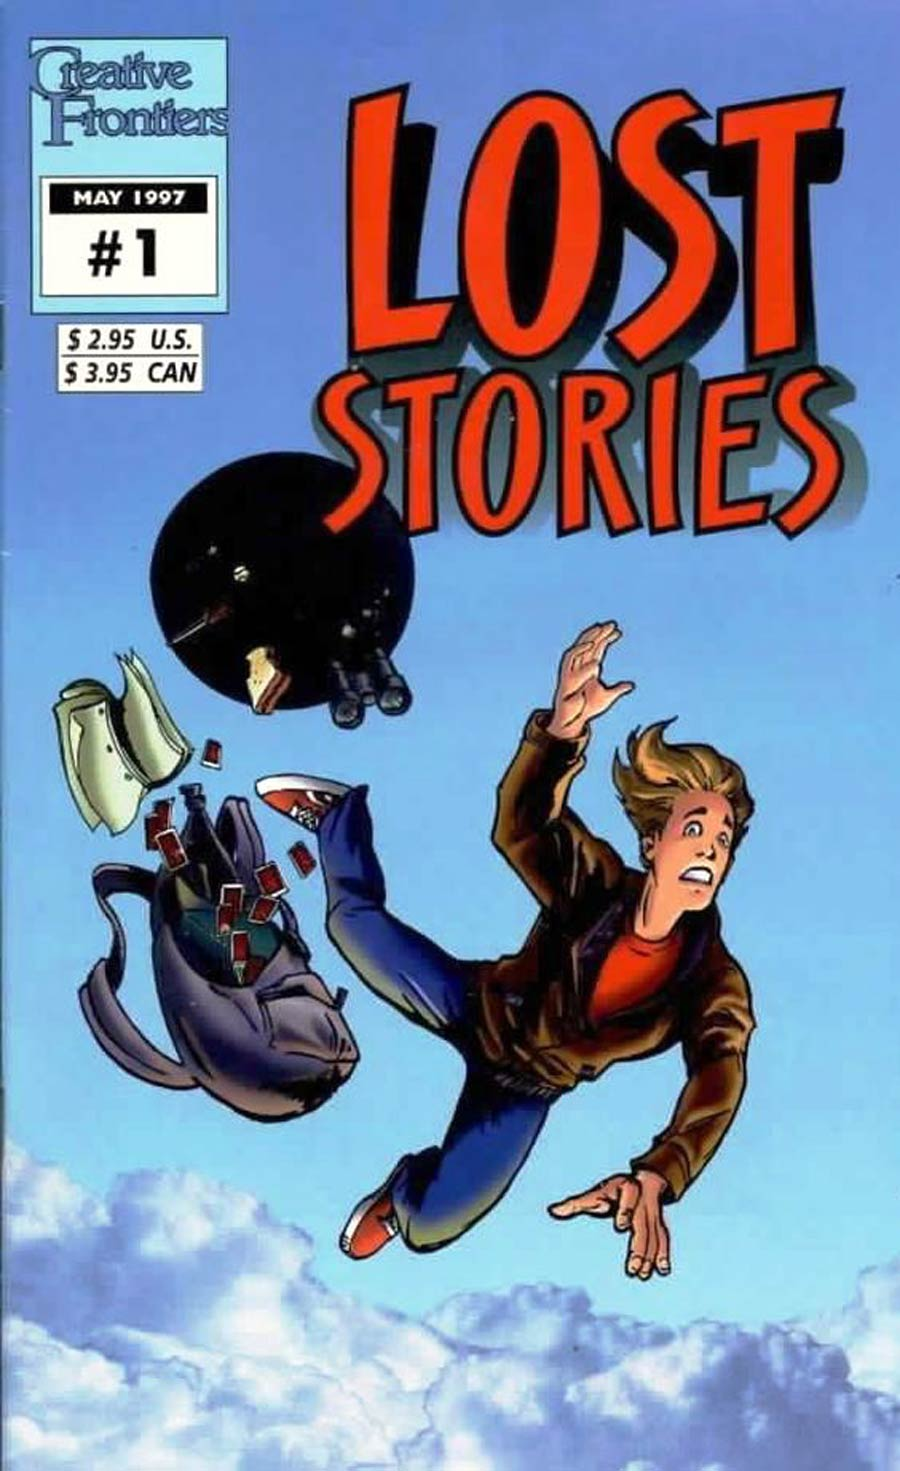 Lost Stories #1